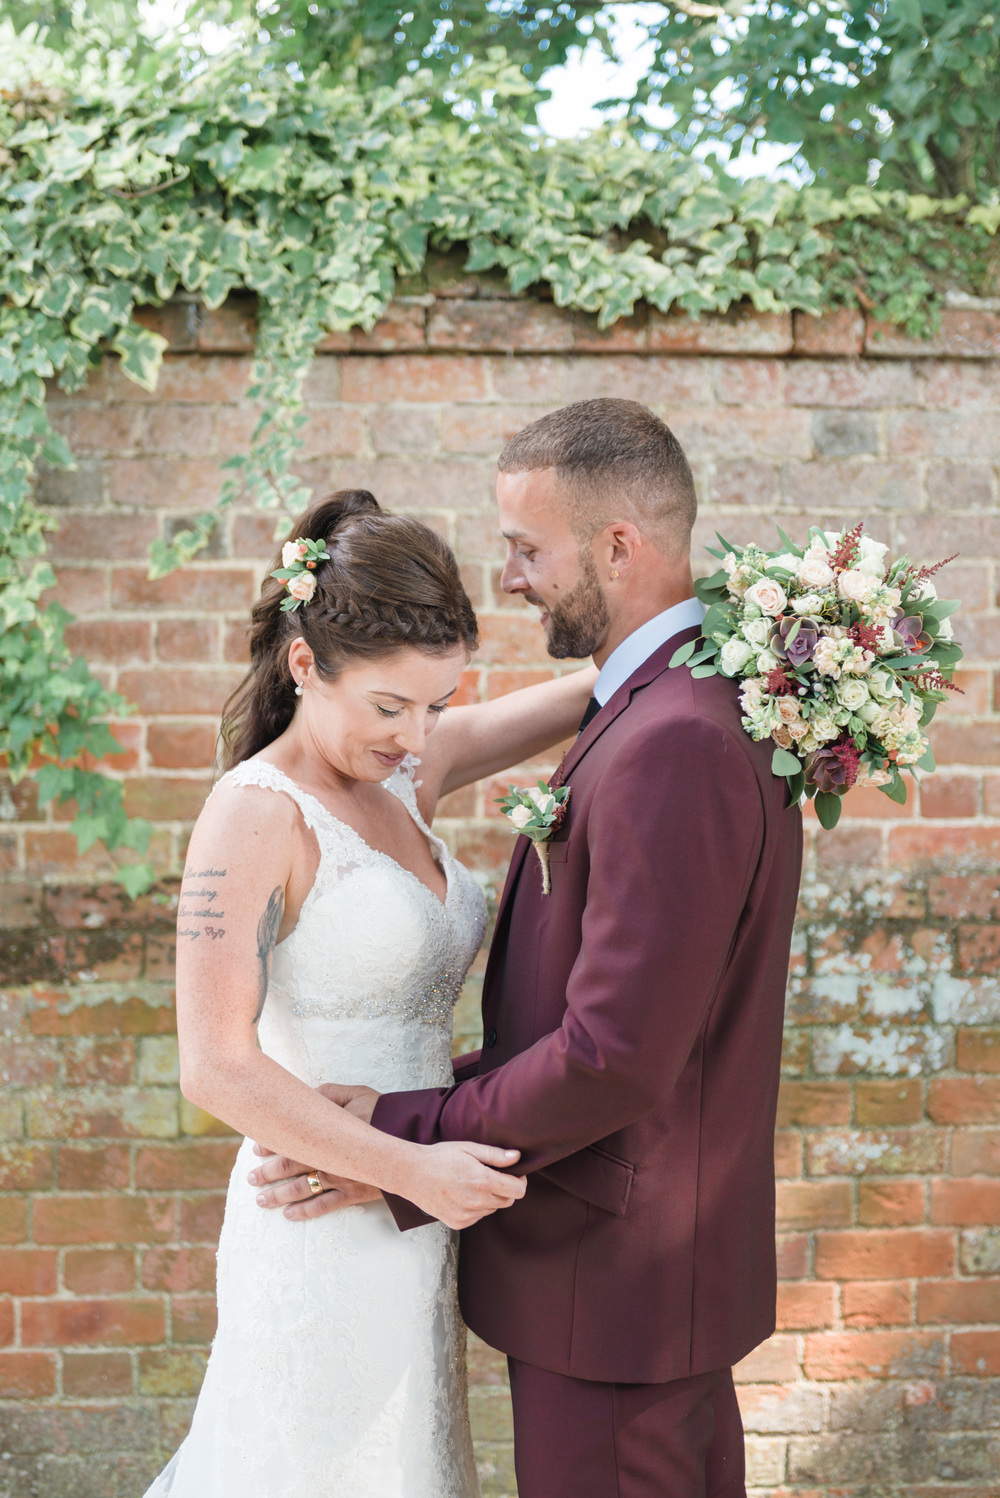 hannah-mcclune-photography-mill-house-hotel-swallowfield-rustic-wedding-burgundy-and-peach-wedding-52